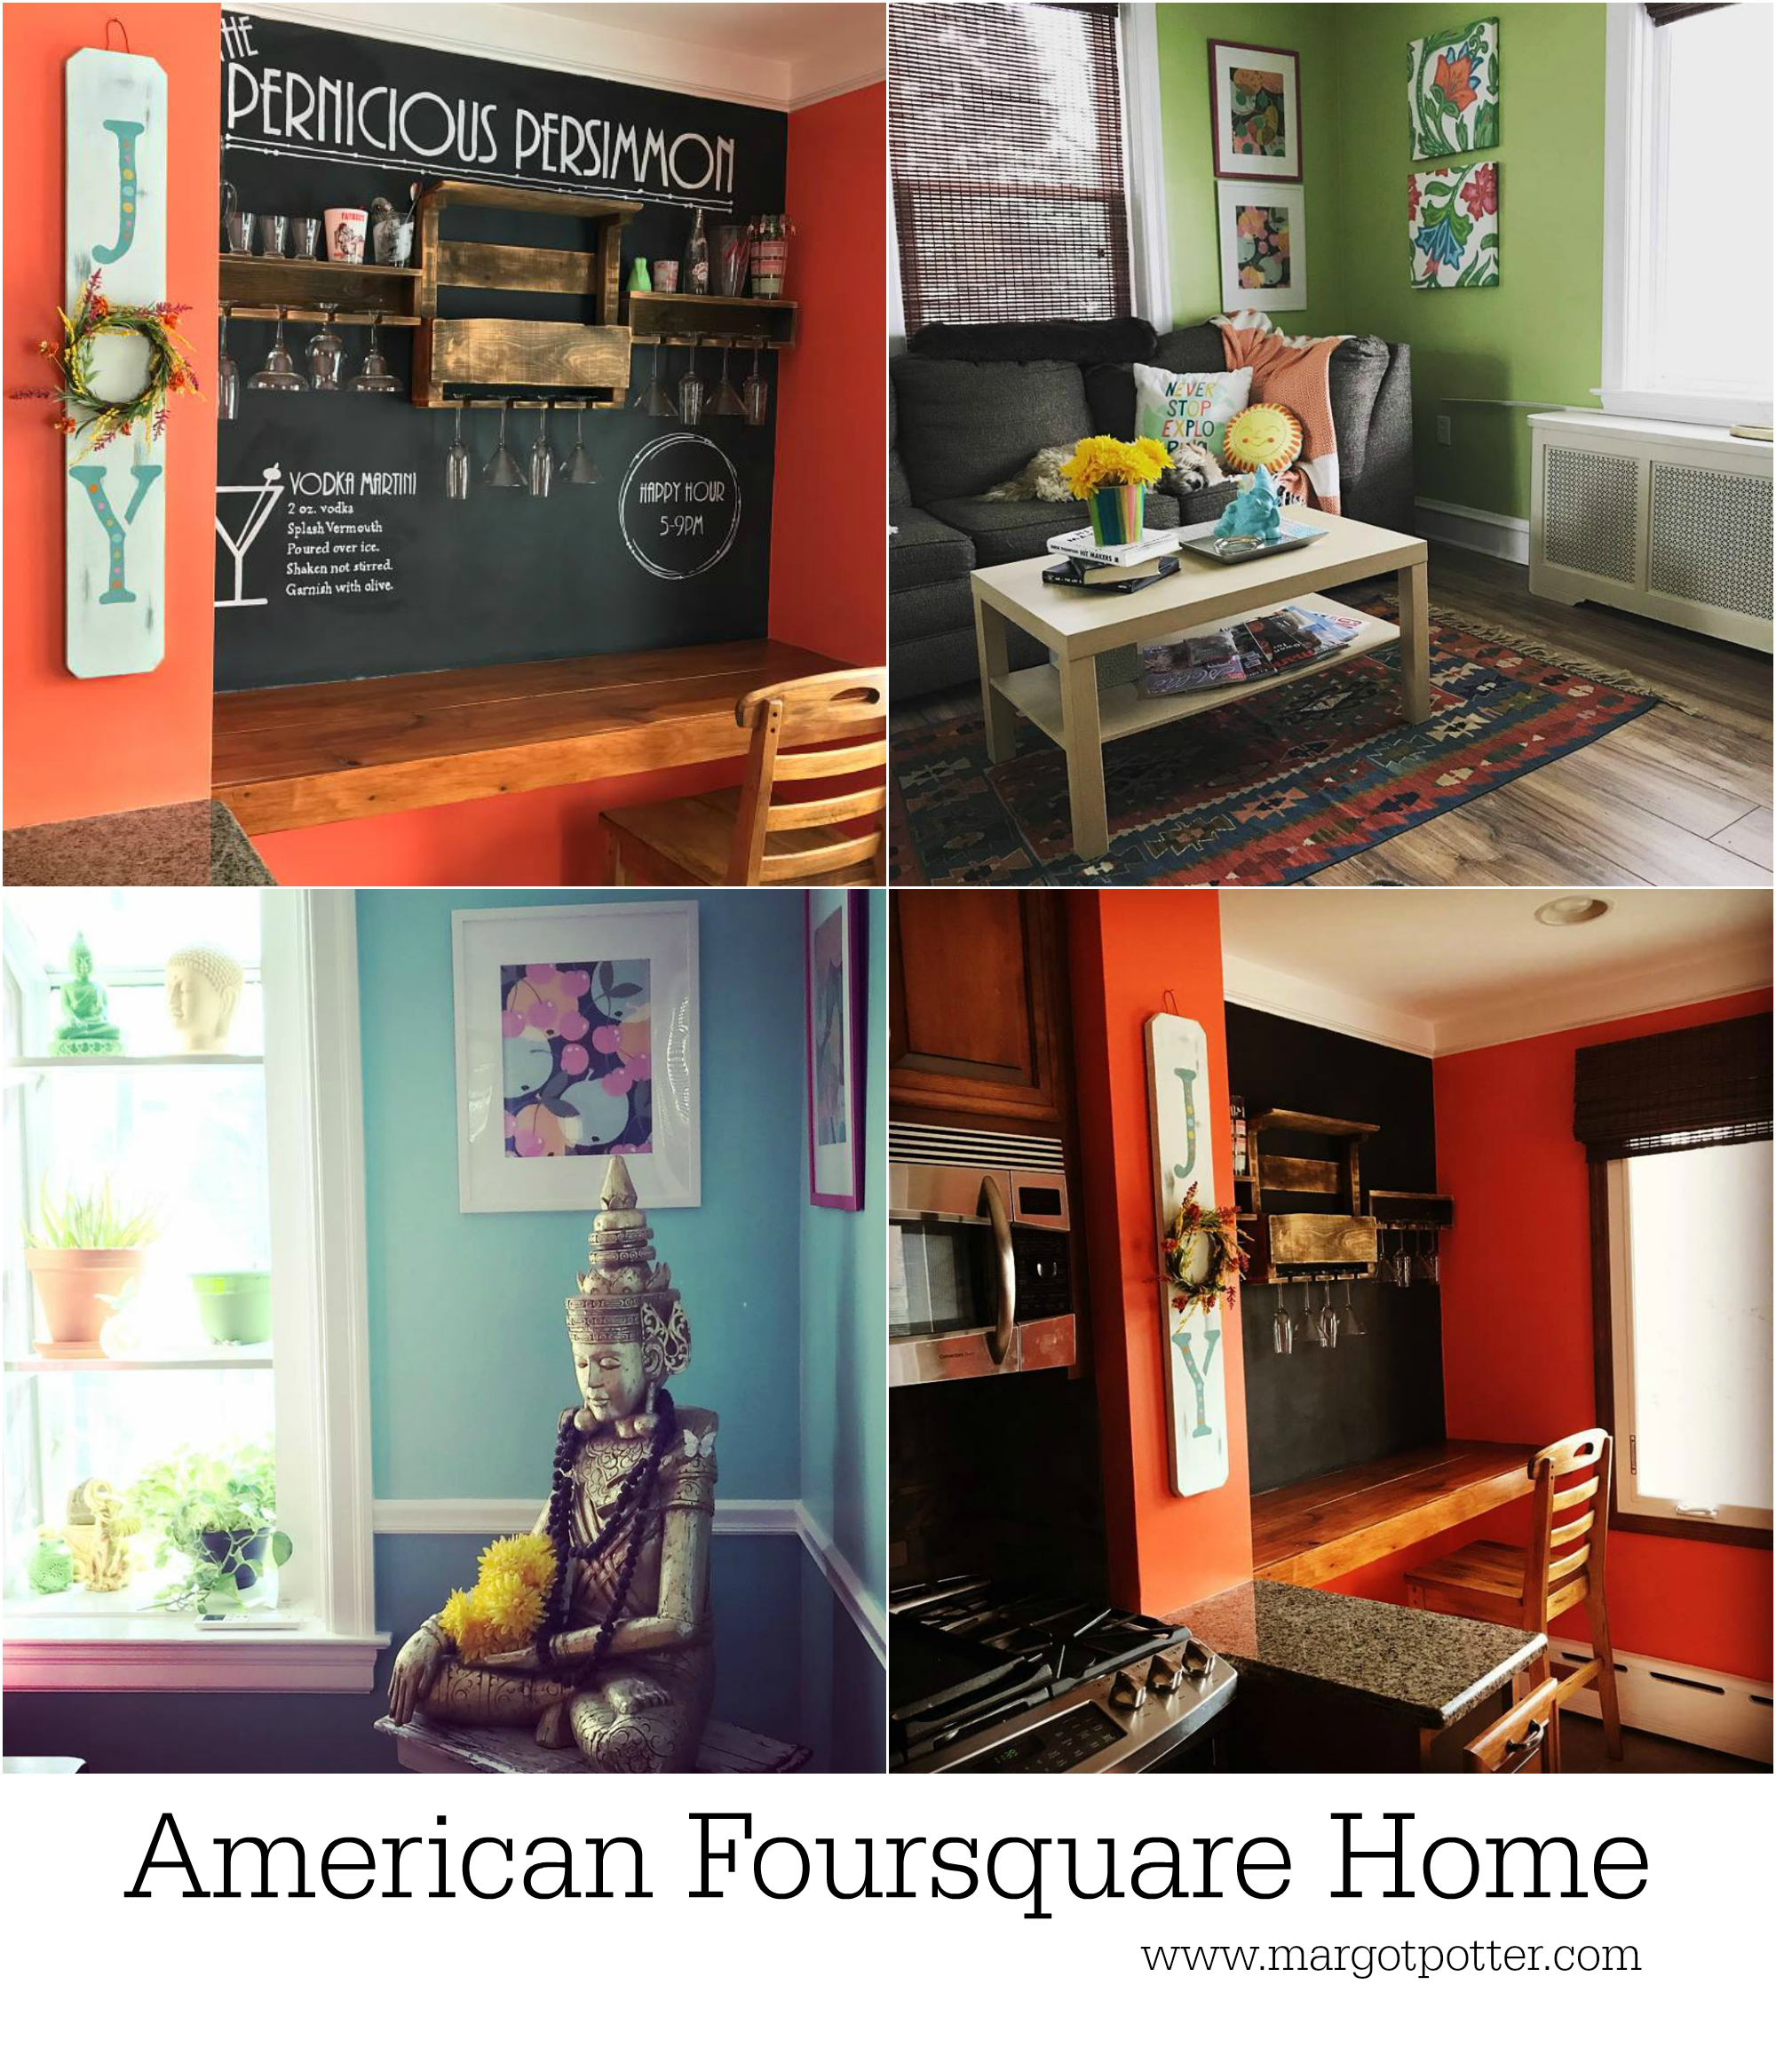 American Foursquare Home.png